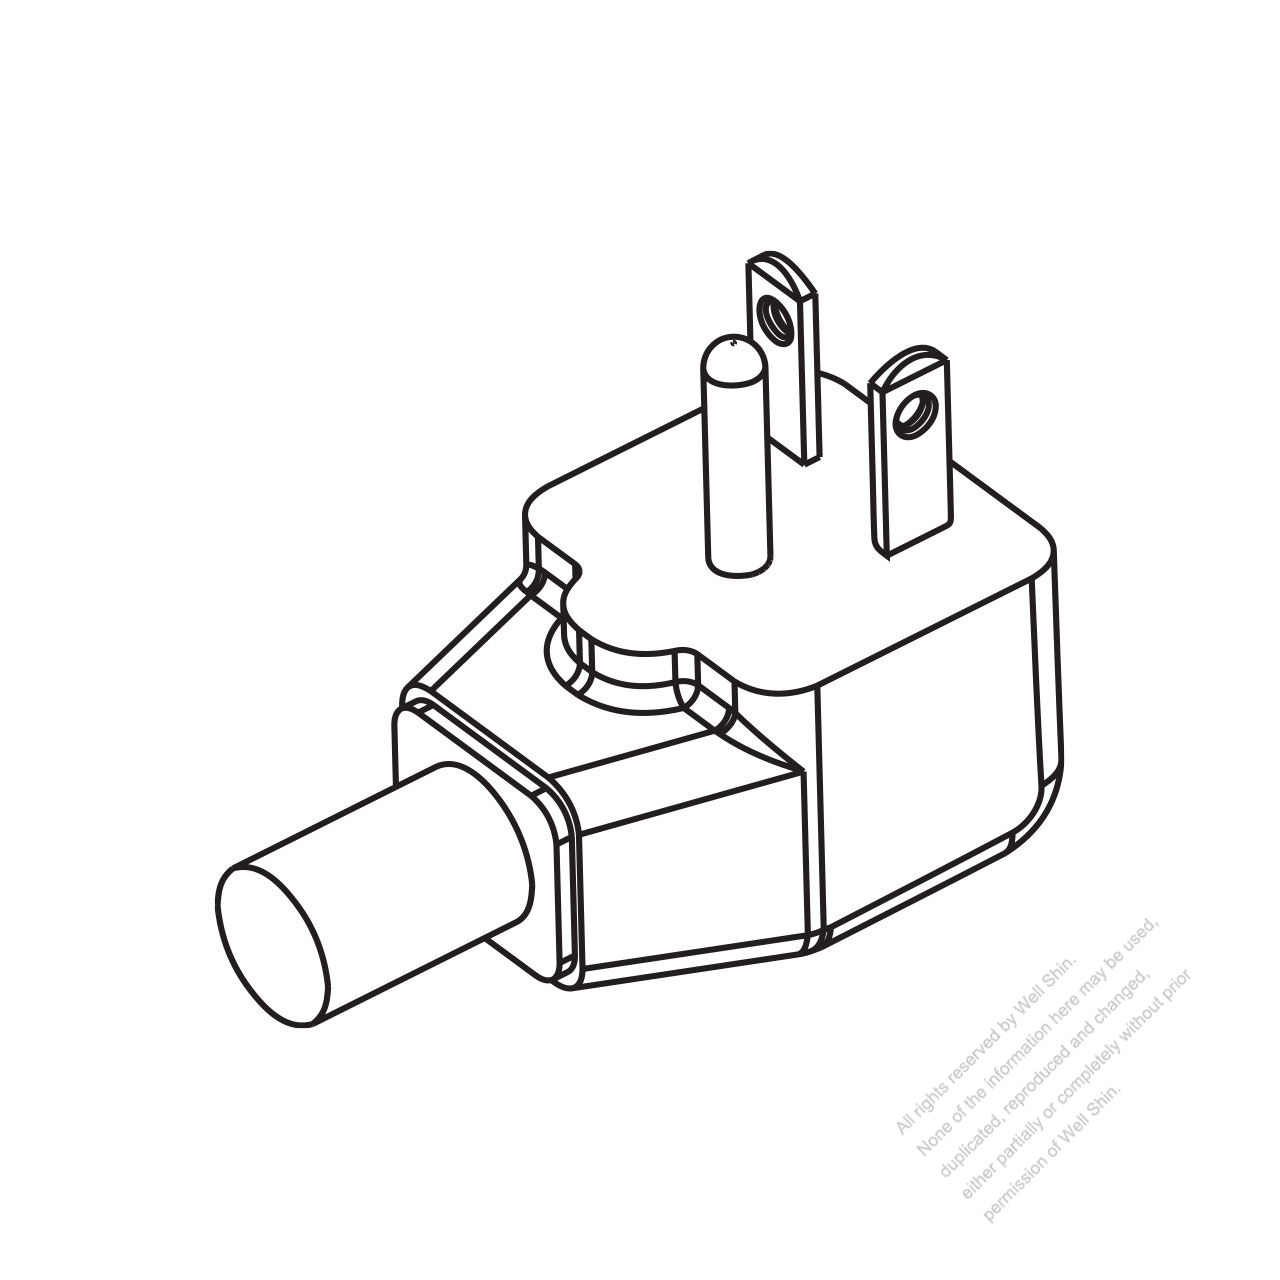 Nema 6 15p Wiring Diagram in addition Wiring Diagram For Nema 6 20p Plug Harness besides Nema 6 15p Plug Wiring Diagram further L5 30r Receptacle Wiring Diagram as well Wiring Diagram For Nema 6 20p Plug. on nema 6 15p plug wiring diagram